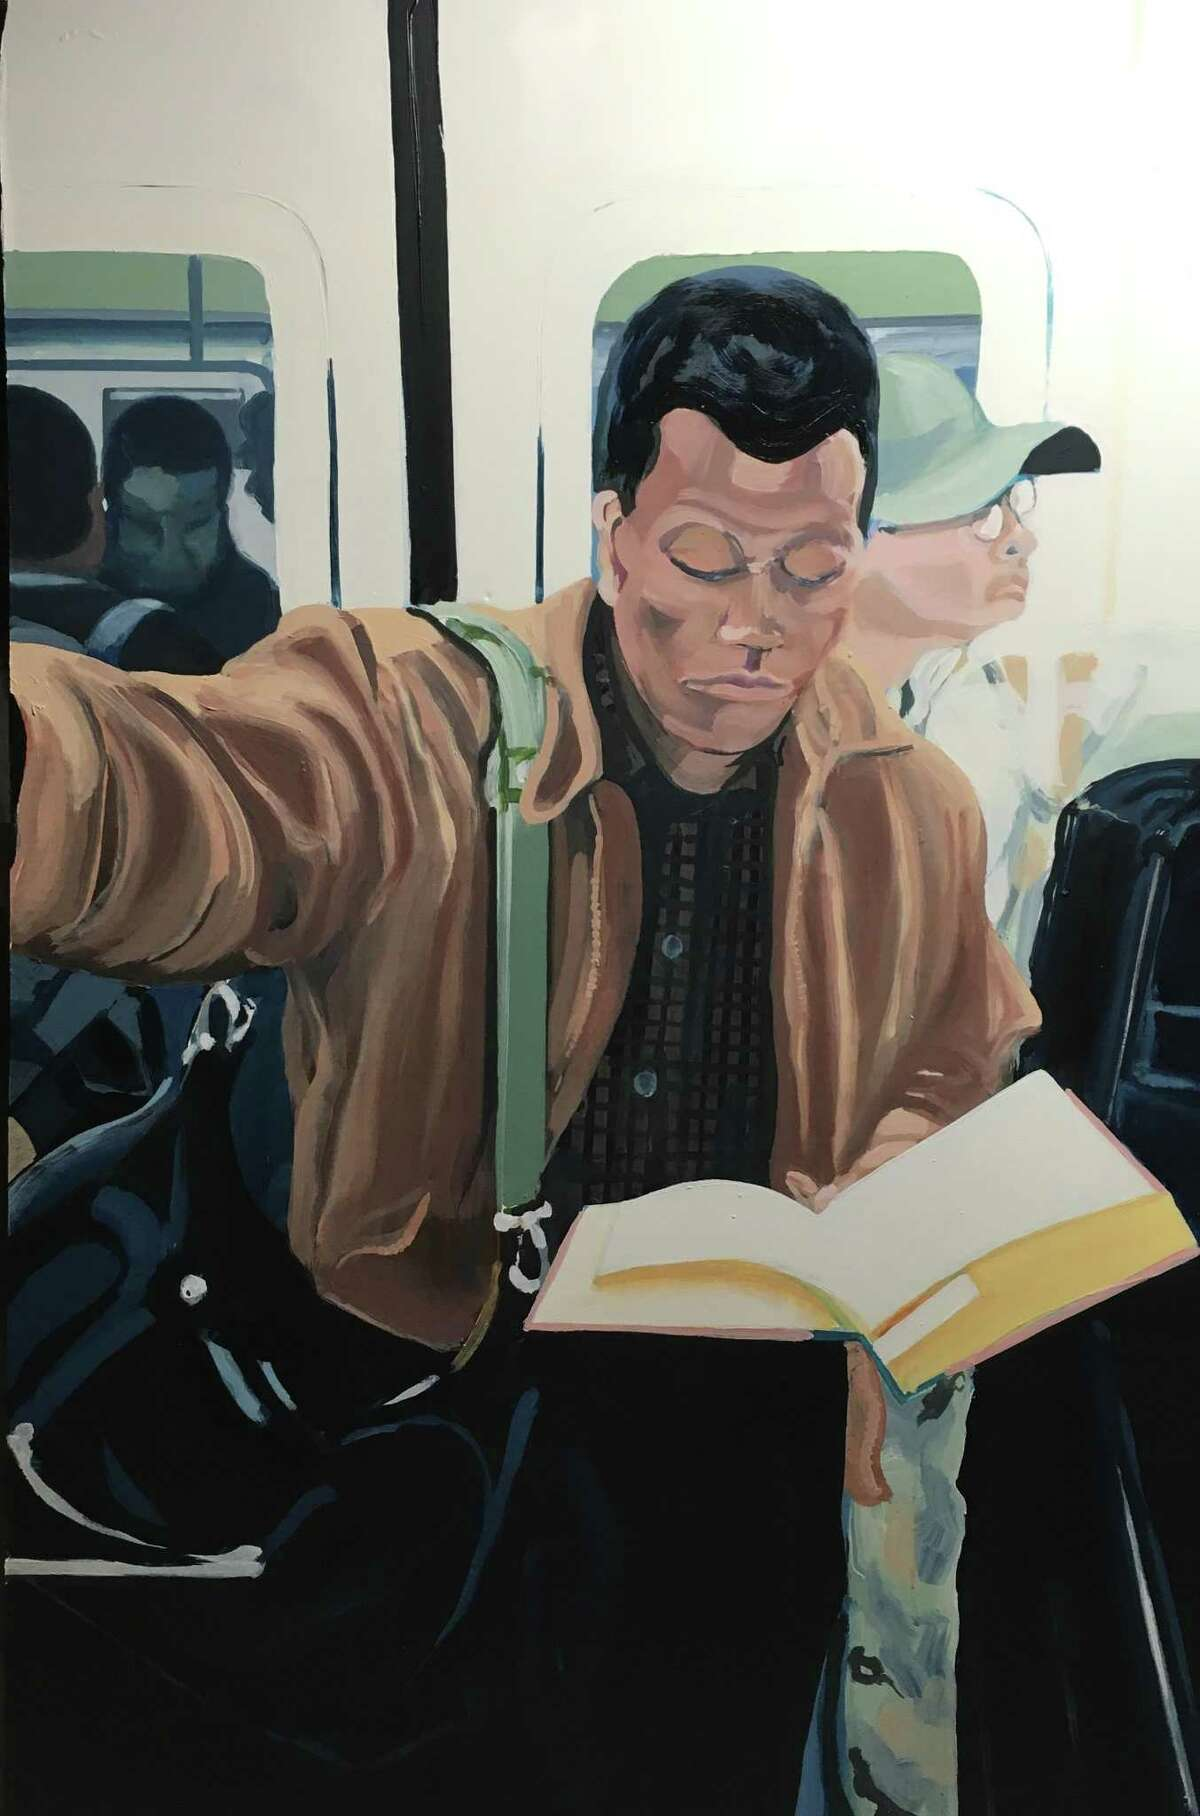 """The """"Black Men Reading"""" series by artist Larry Morse depicts Black men reading on subways and elsewhere. The series is on display at the Easton Public Library as part of the """"Diverse Perspectives"""" exhibit."""